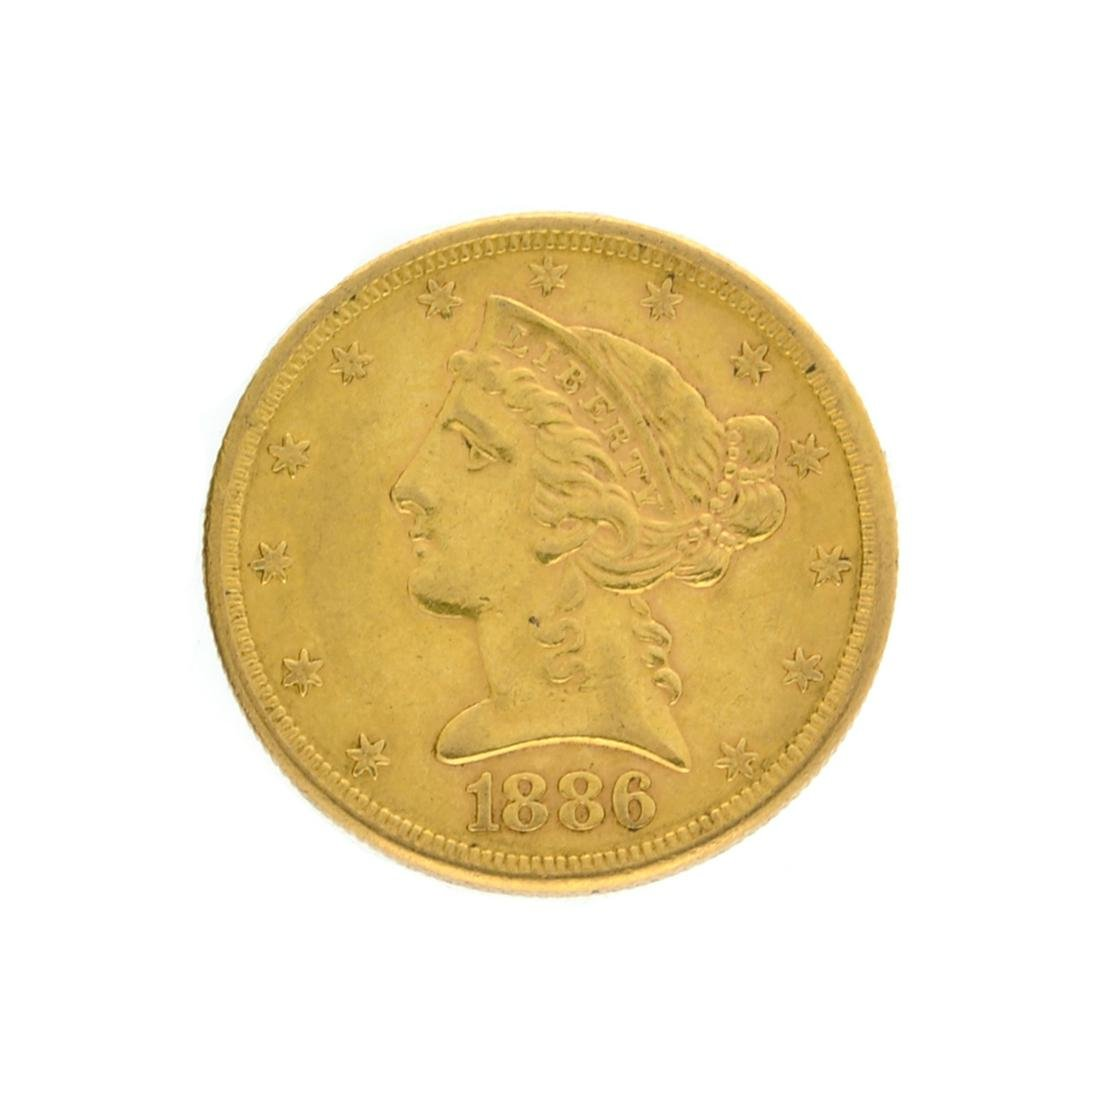 Extremely Rare 1886-S $5 U.S. Liberty Head Gold Coin